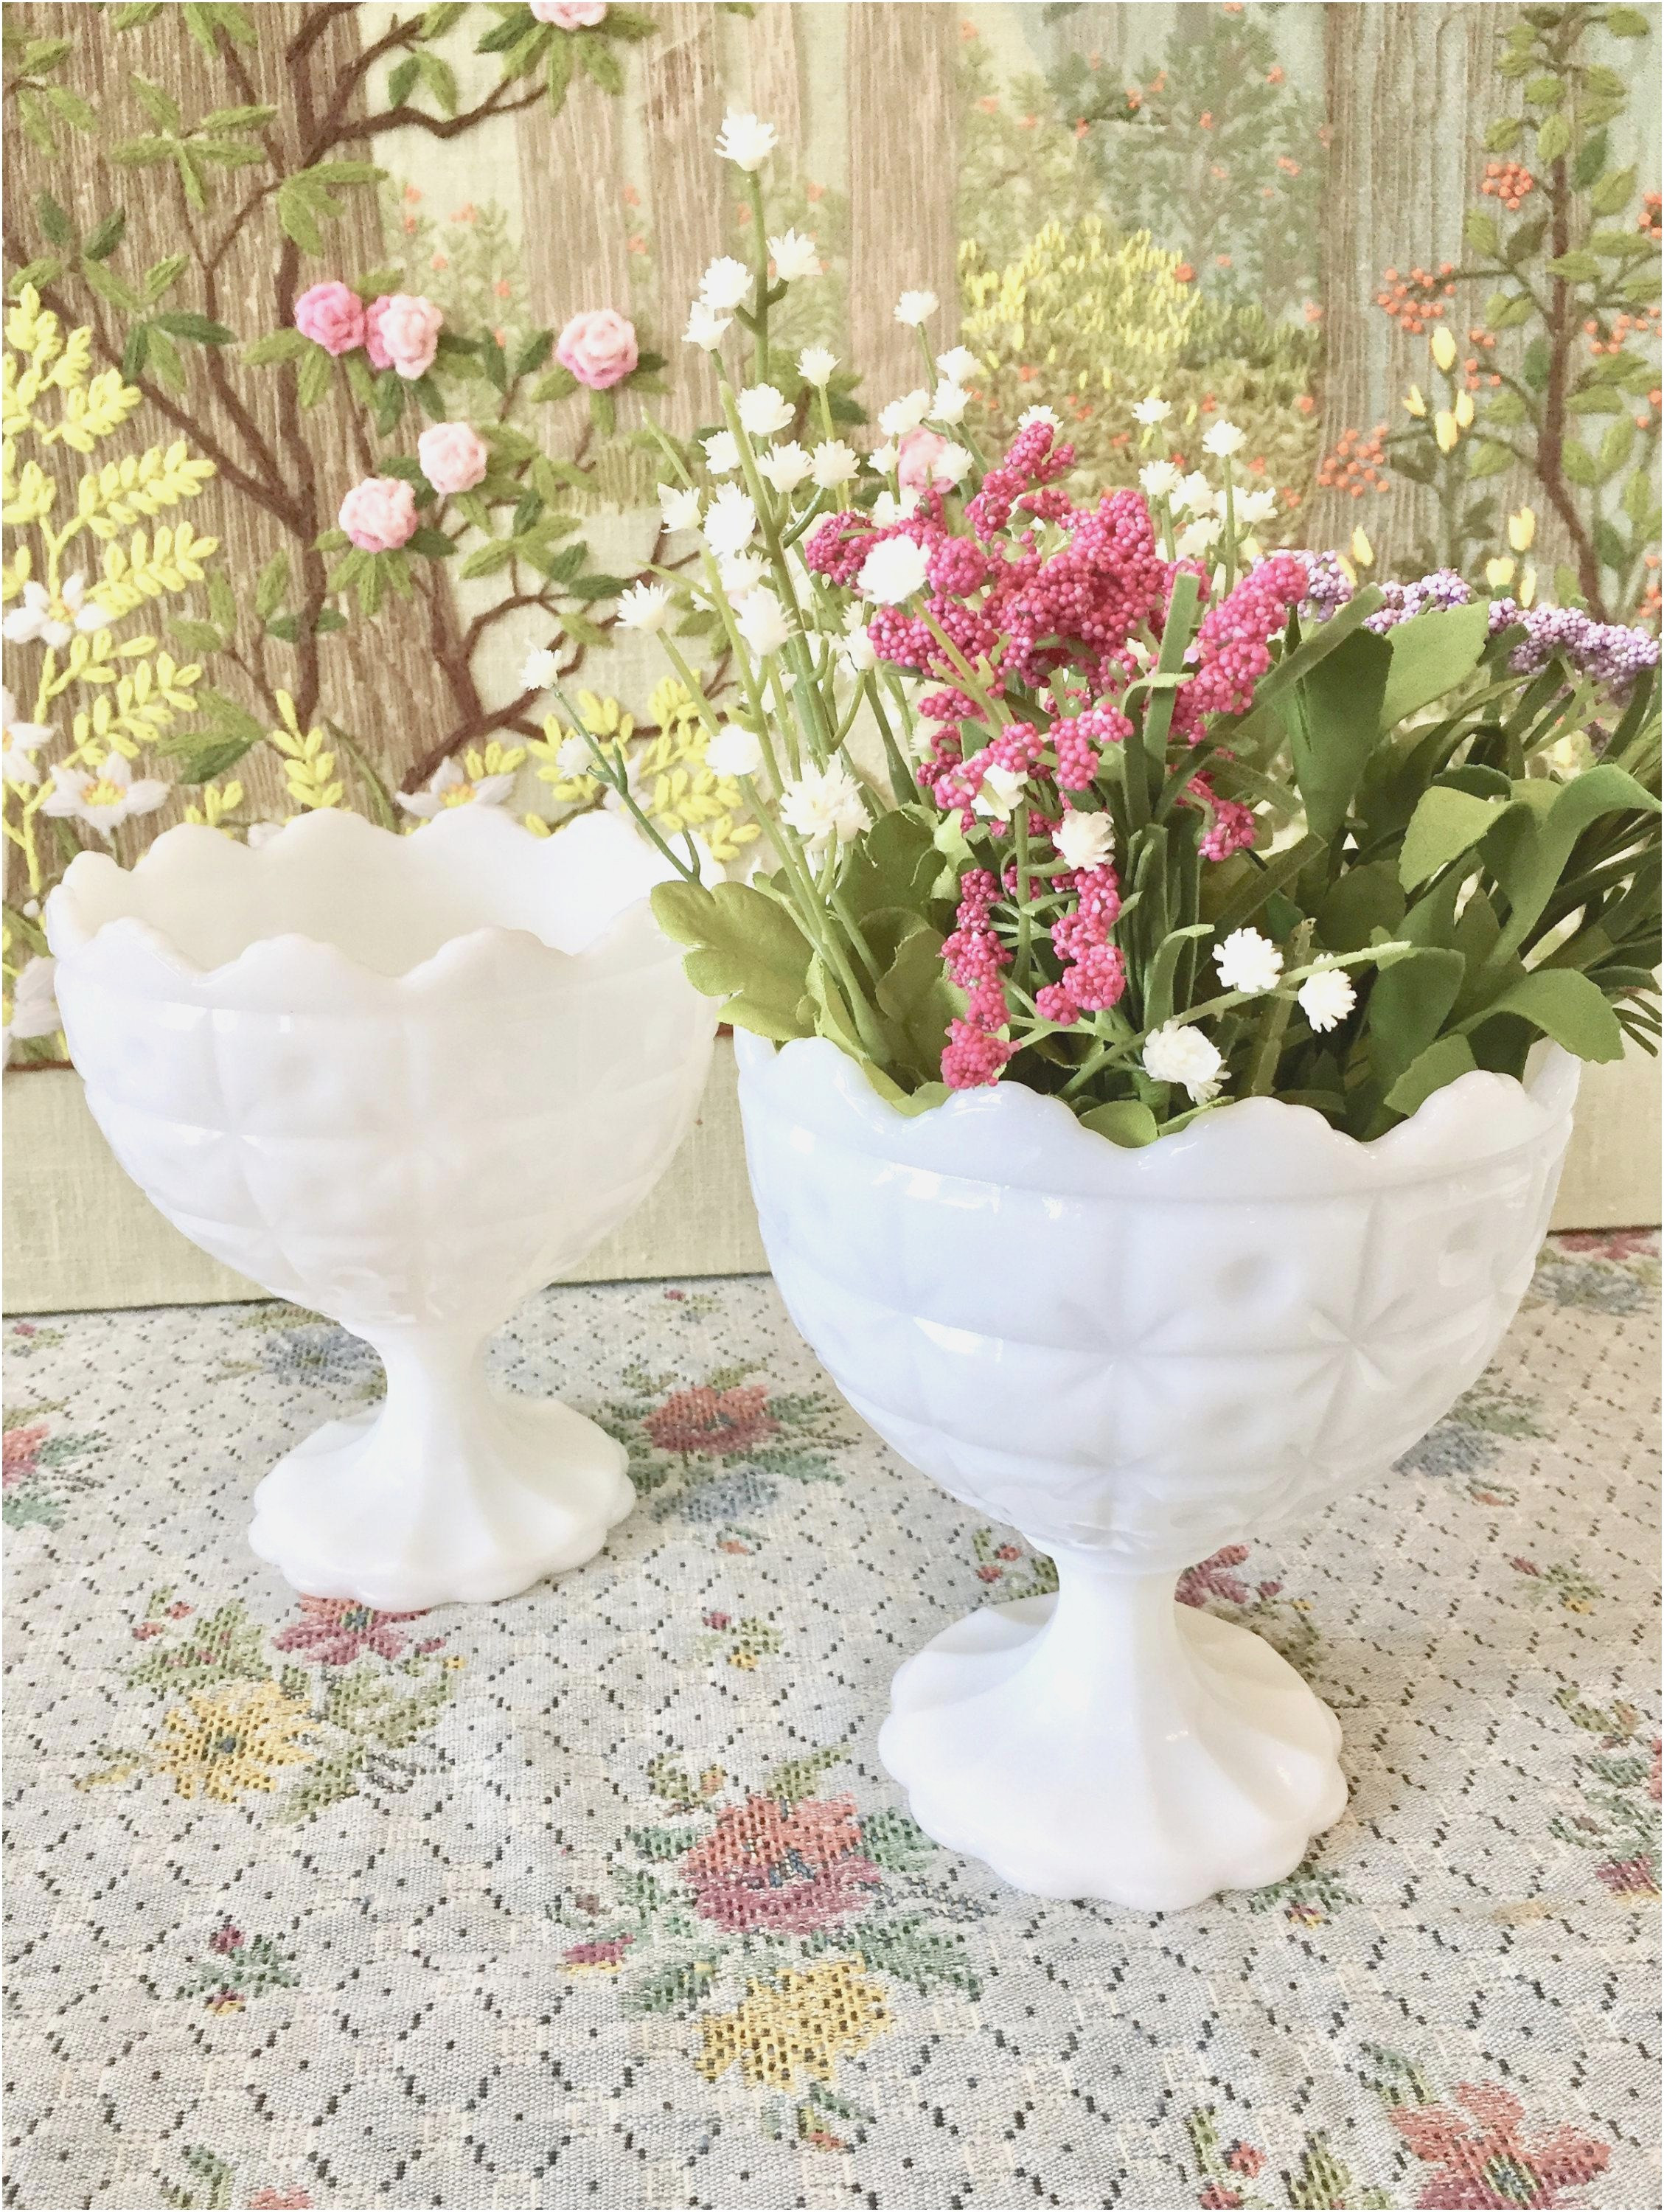 wholesale unique vases of 34 lovely living room pics graphics living room decor ideas with regard to candy table for wedding unique living room vases wedding inspirational h vases candy vase i 0d